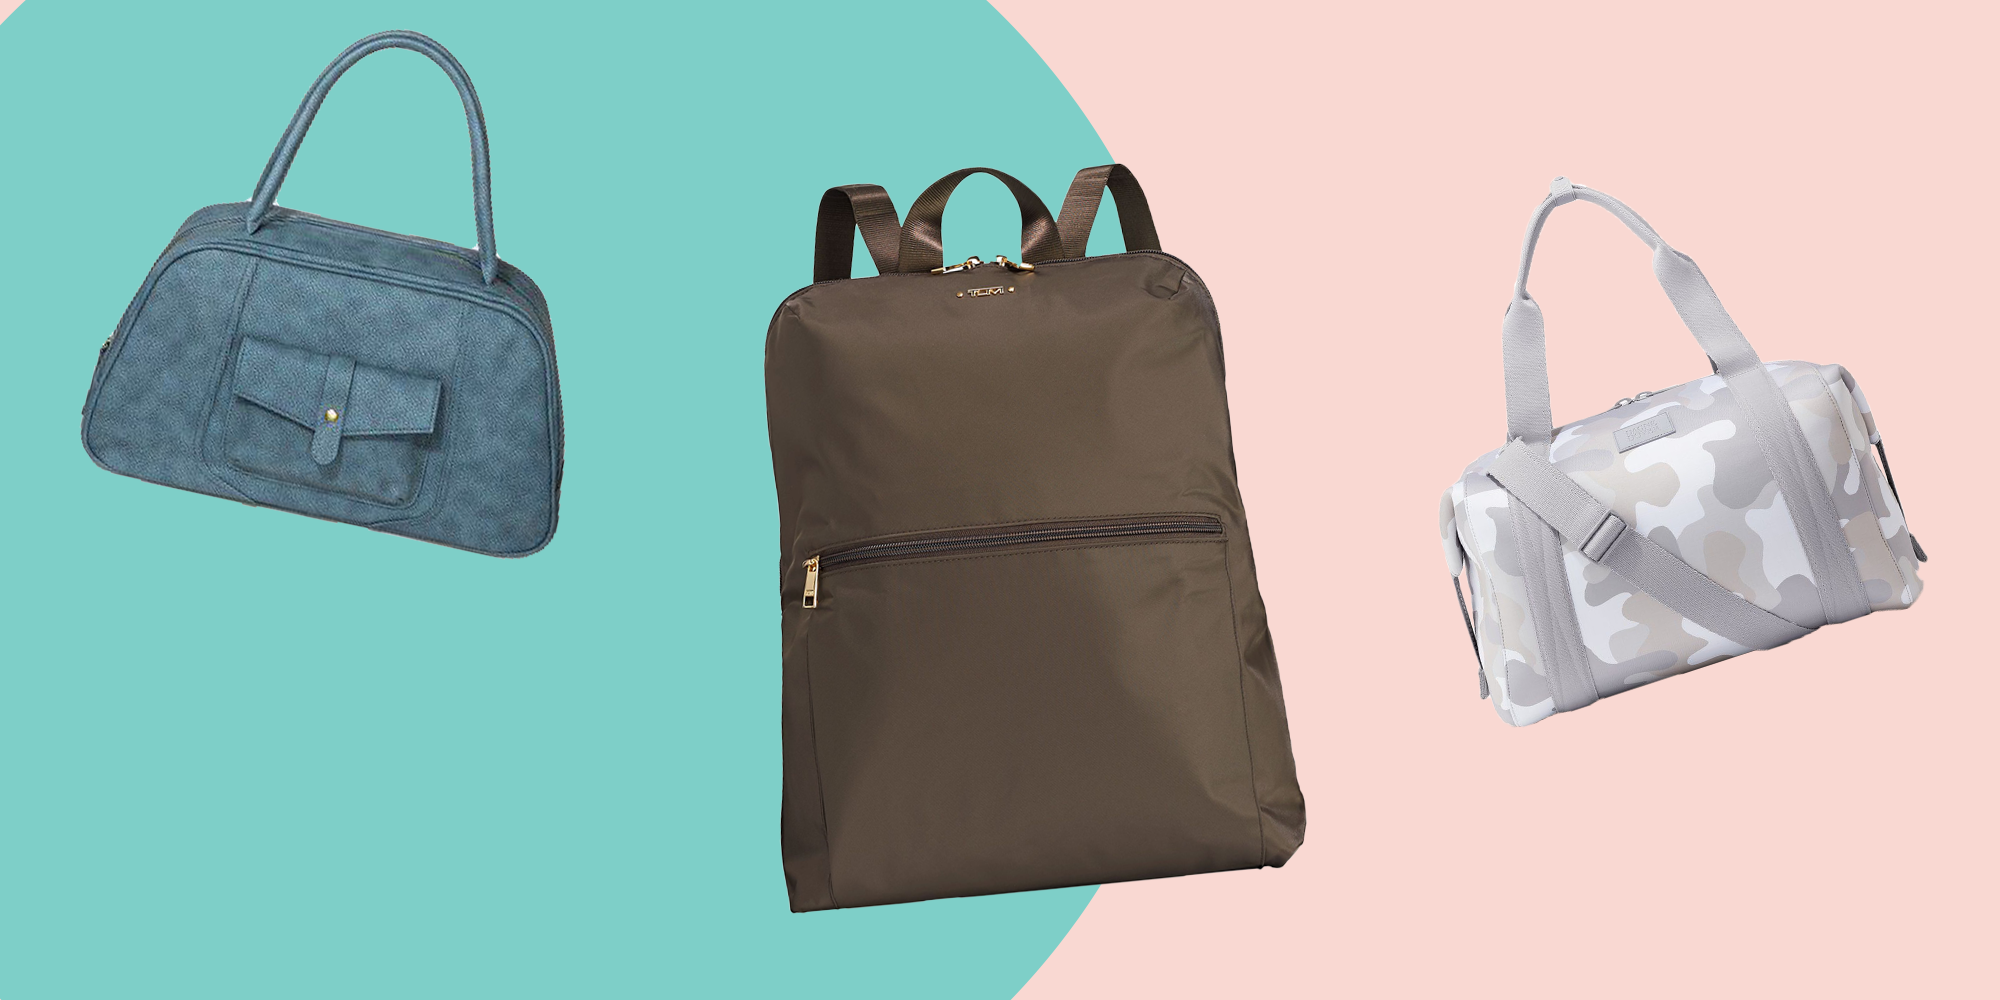 c410c0531f54 16 of the Best Weekender Bags for Women in 2019